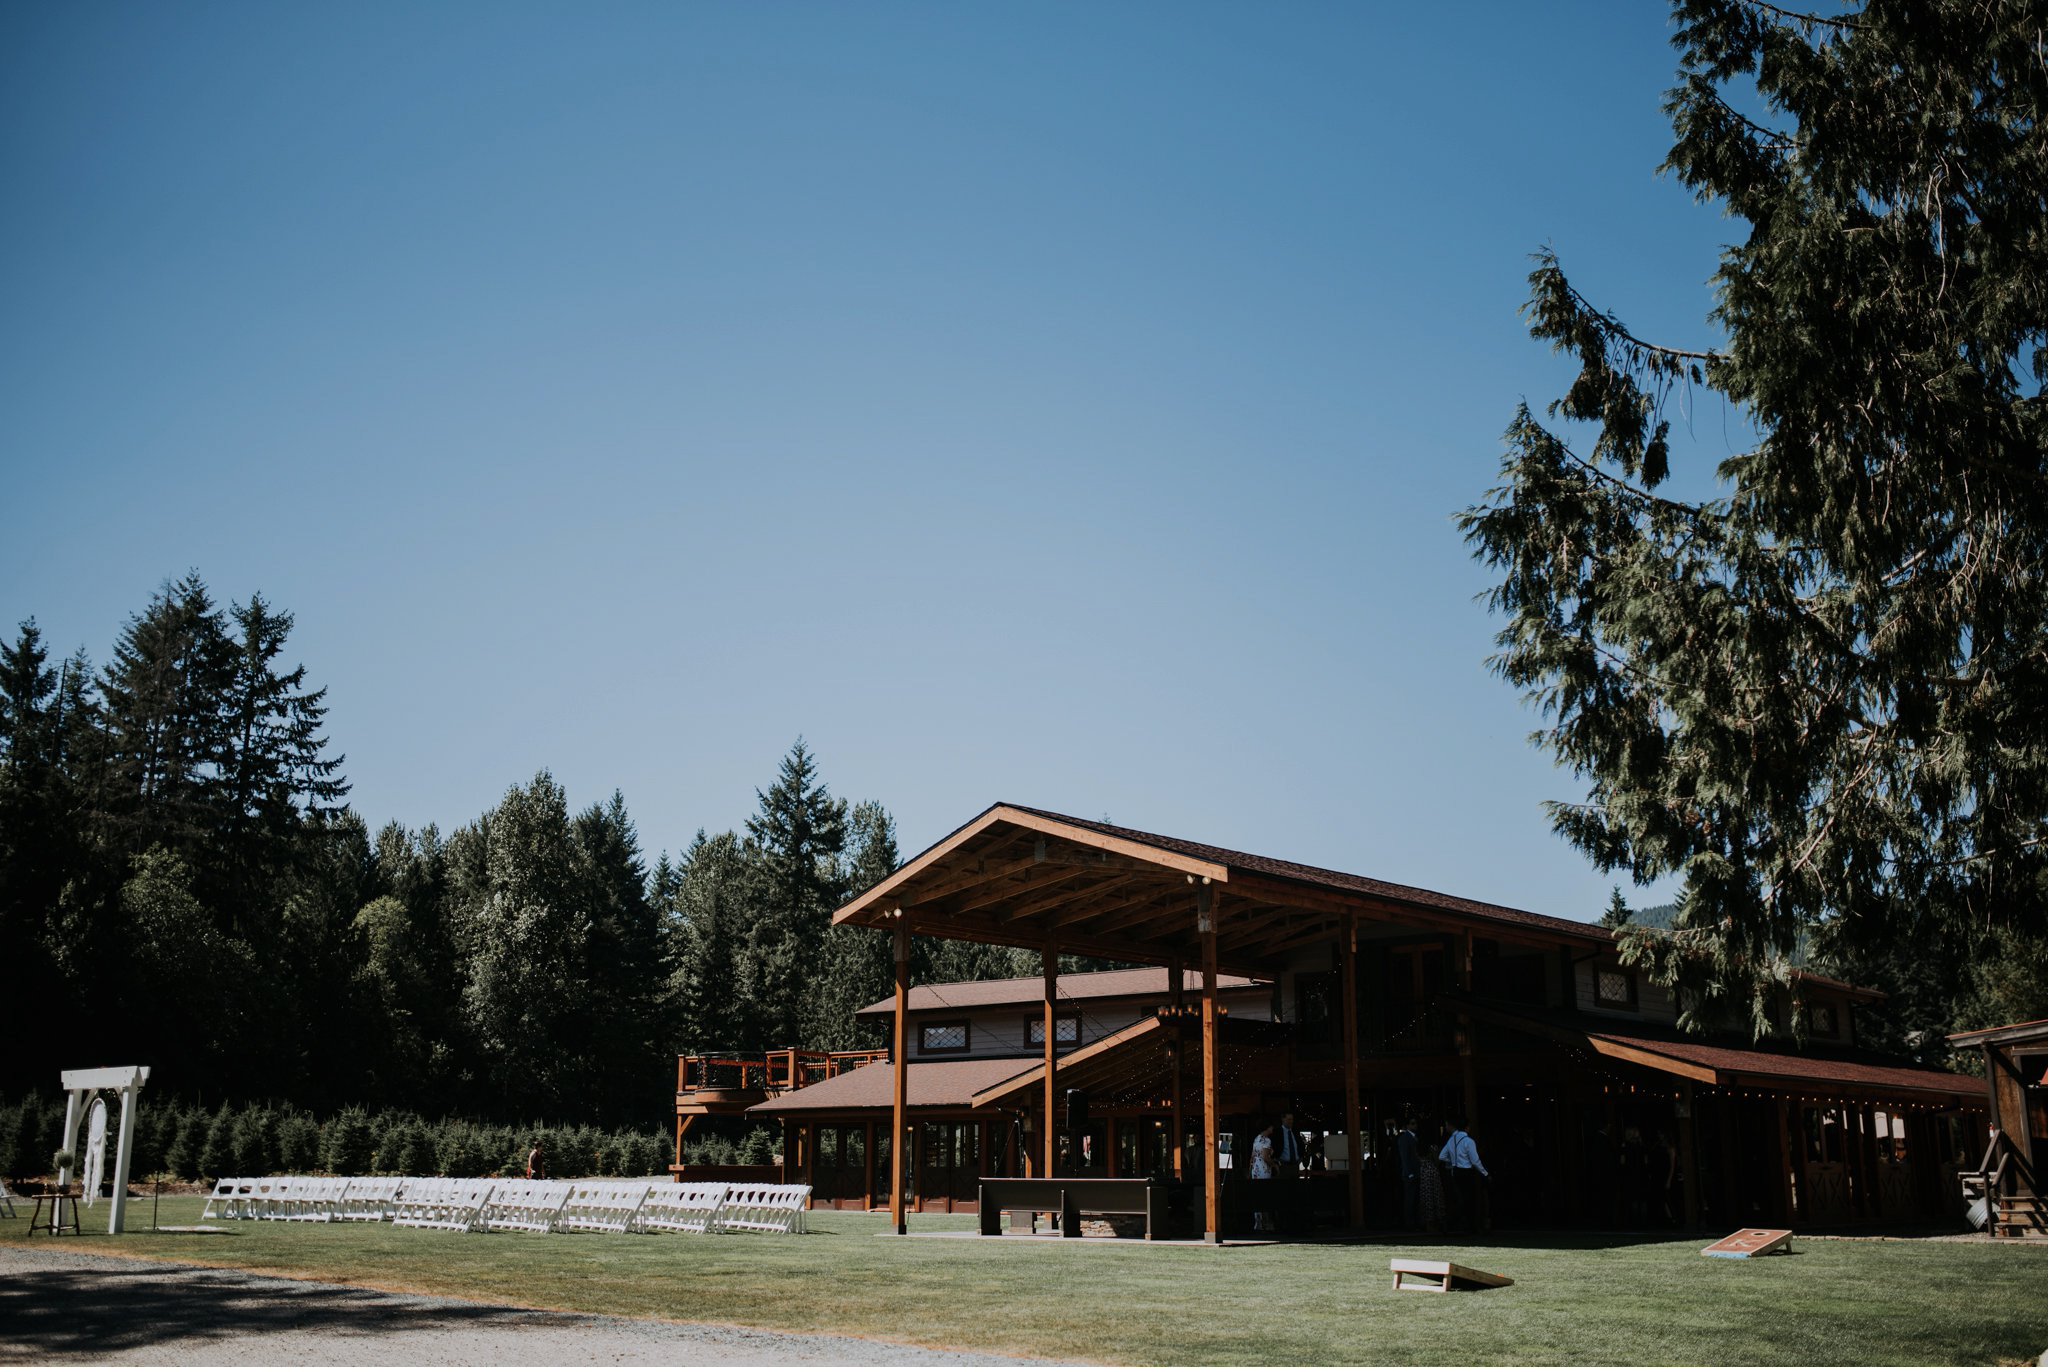 trinity-tree-farm-issaquah-washington-wedding-seattle-lifestyle-photographer-caitlyn-nikula-photography-61.jpg